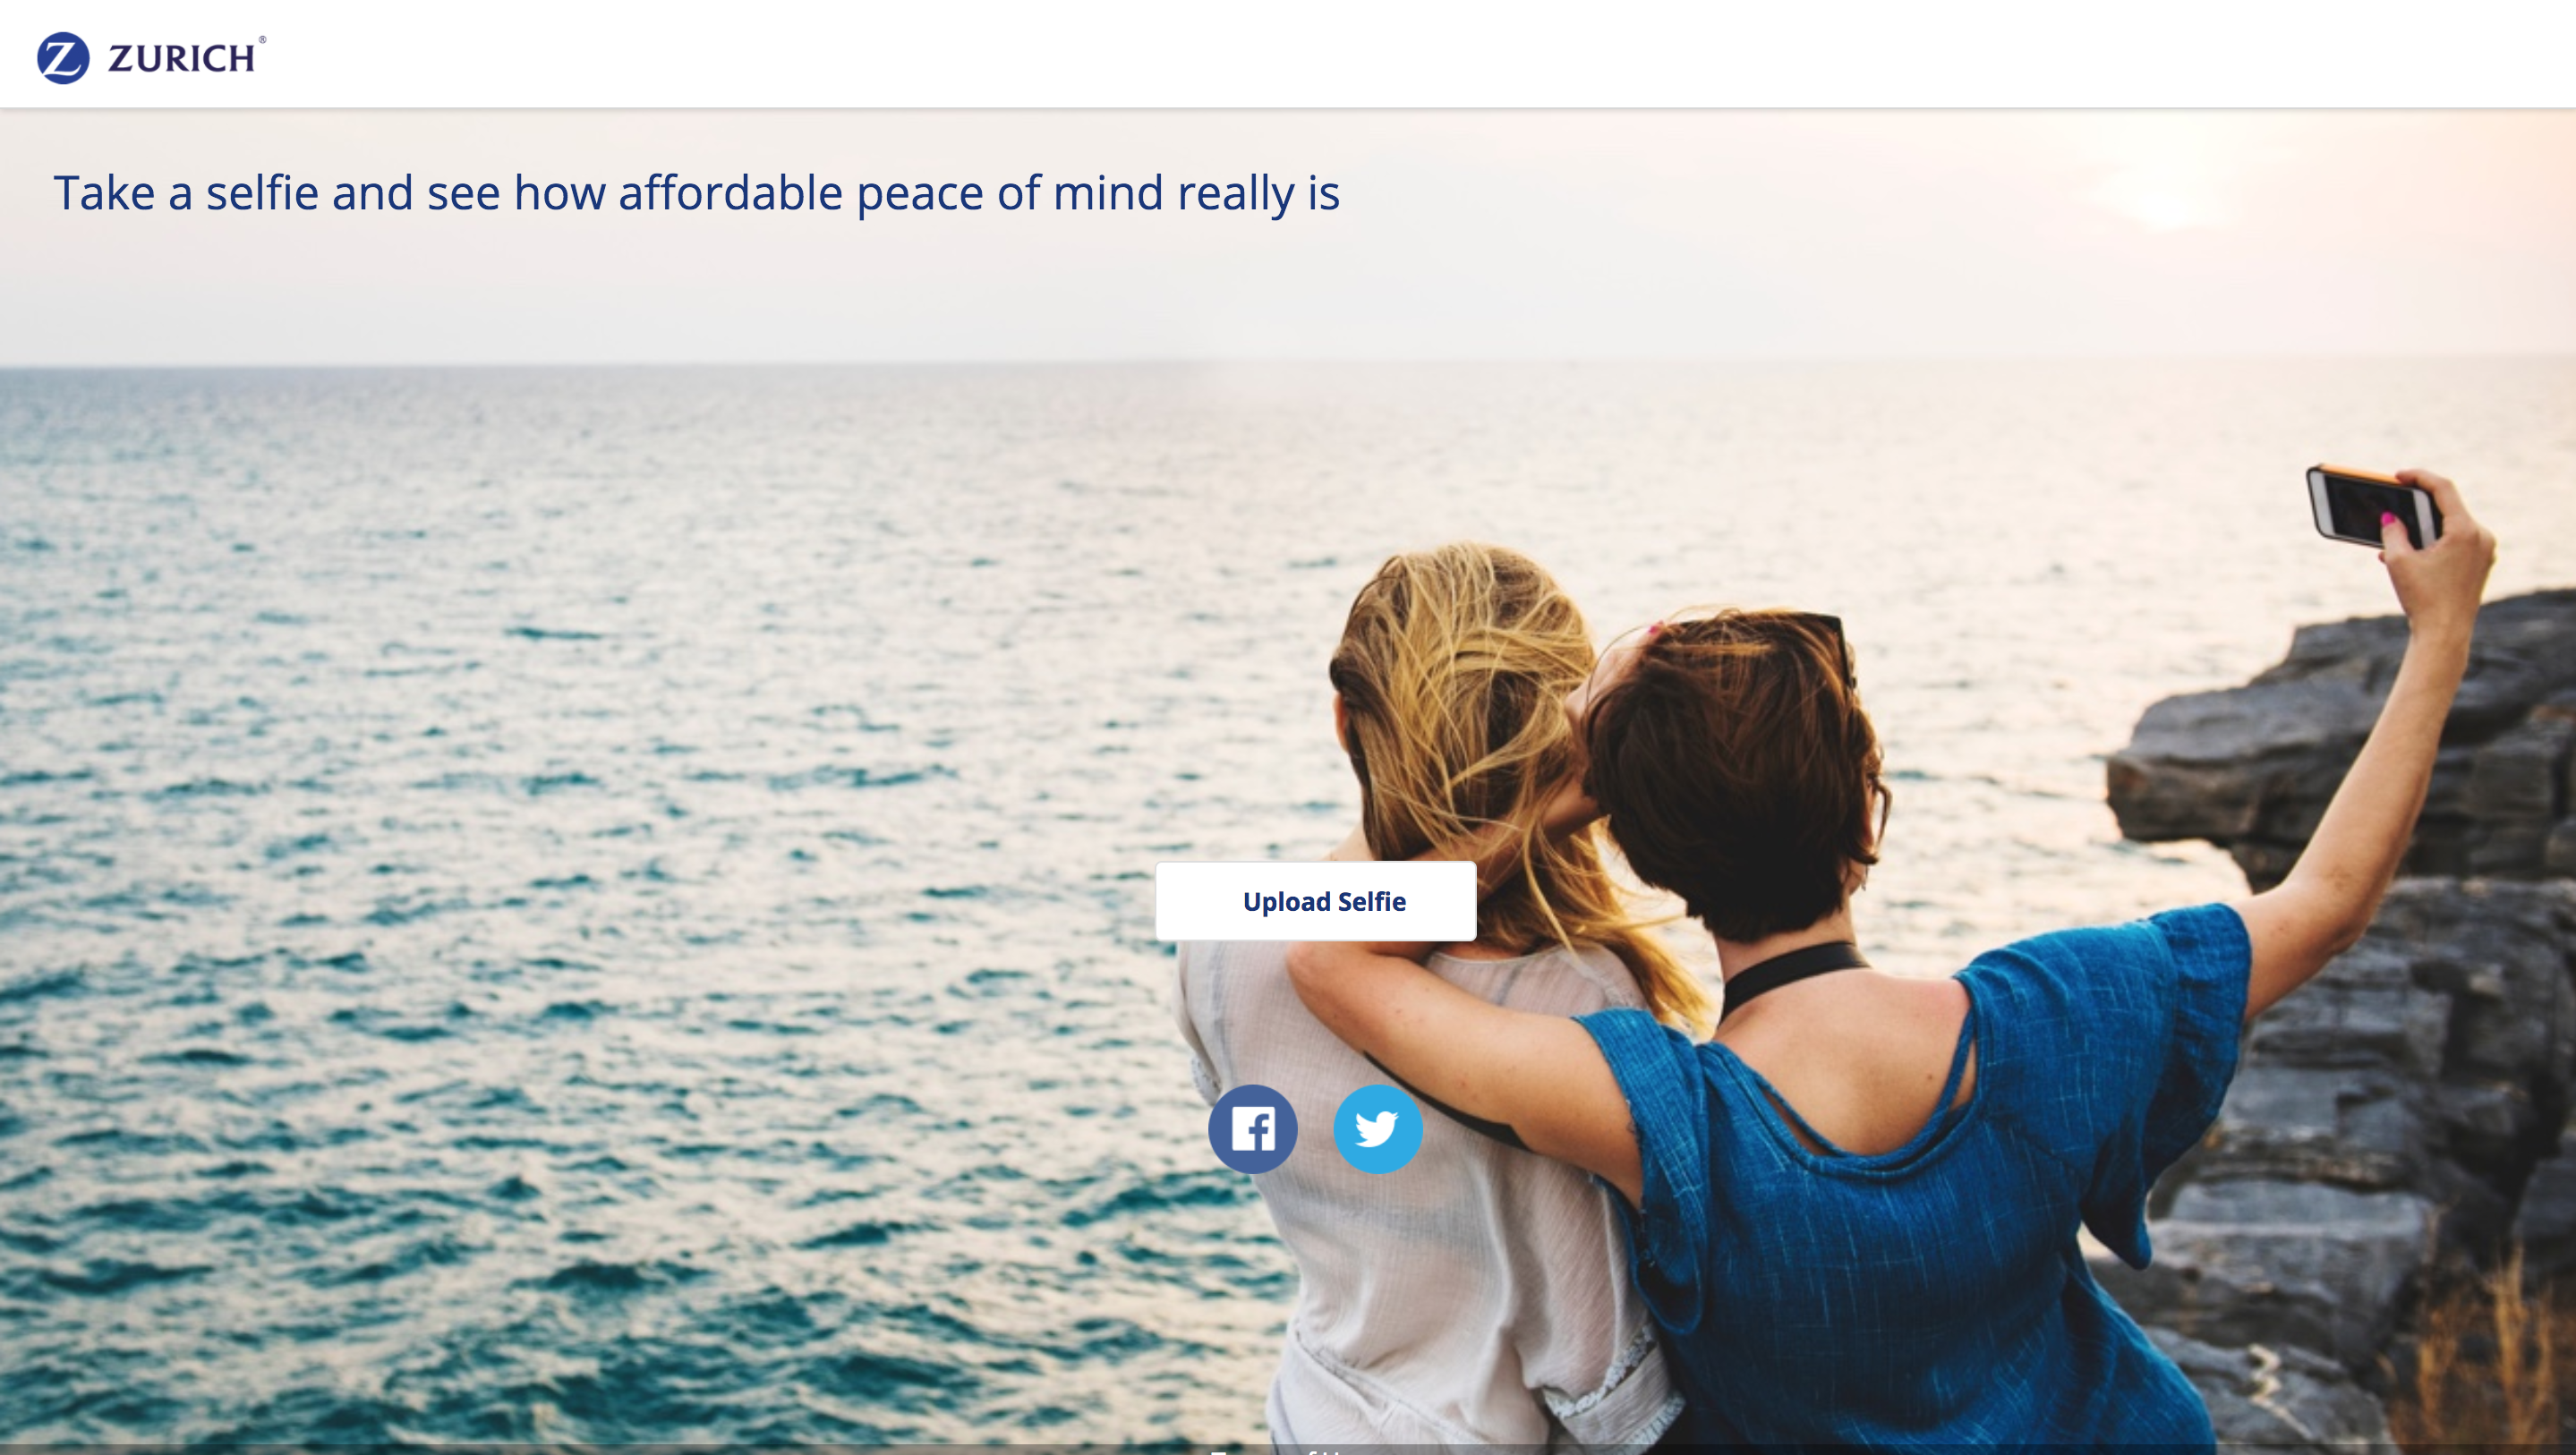 Affordable Life Insurance Quotes Zurich Launches Facequote Selfie To Life Insurance App